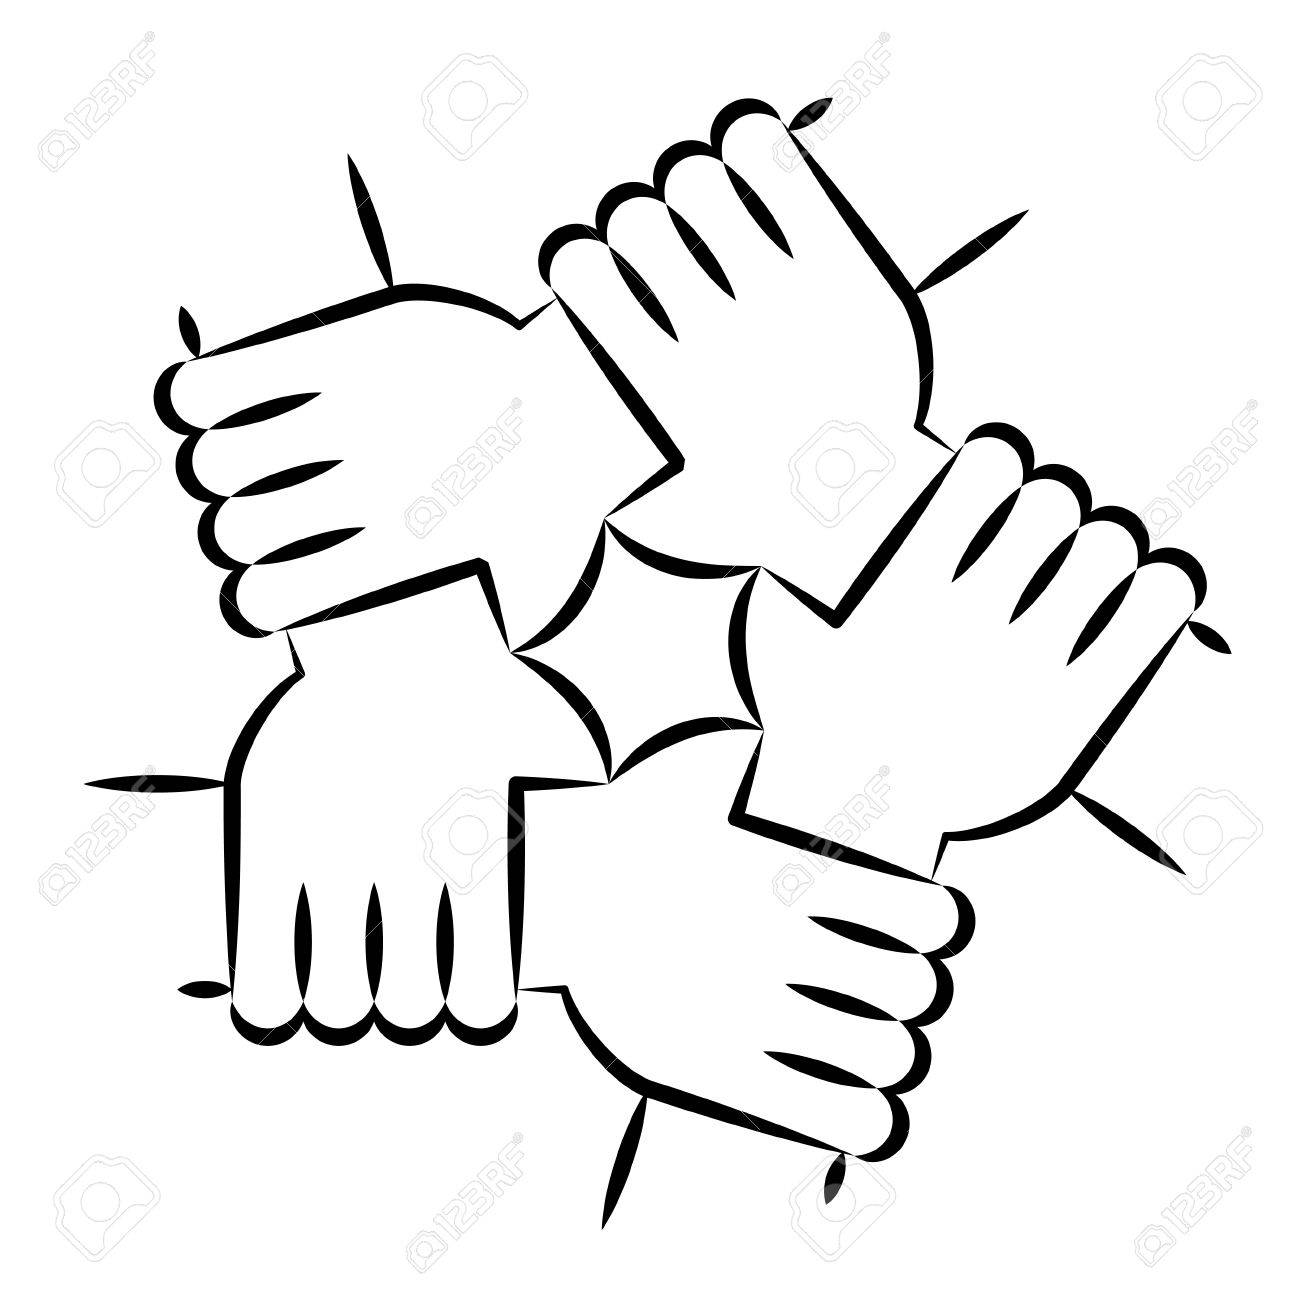 Vector Illustration Of Five Human Hands Holding Eachother For Royalty Free Cliparts Vectors And Stock Illustration Image 72797956